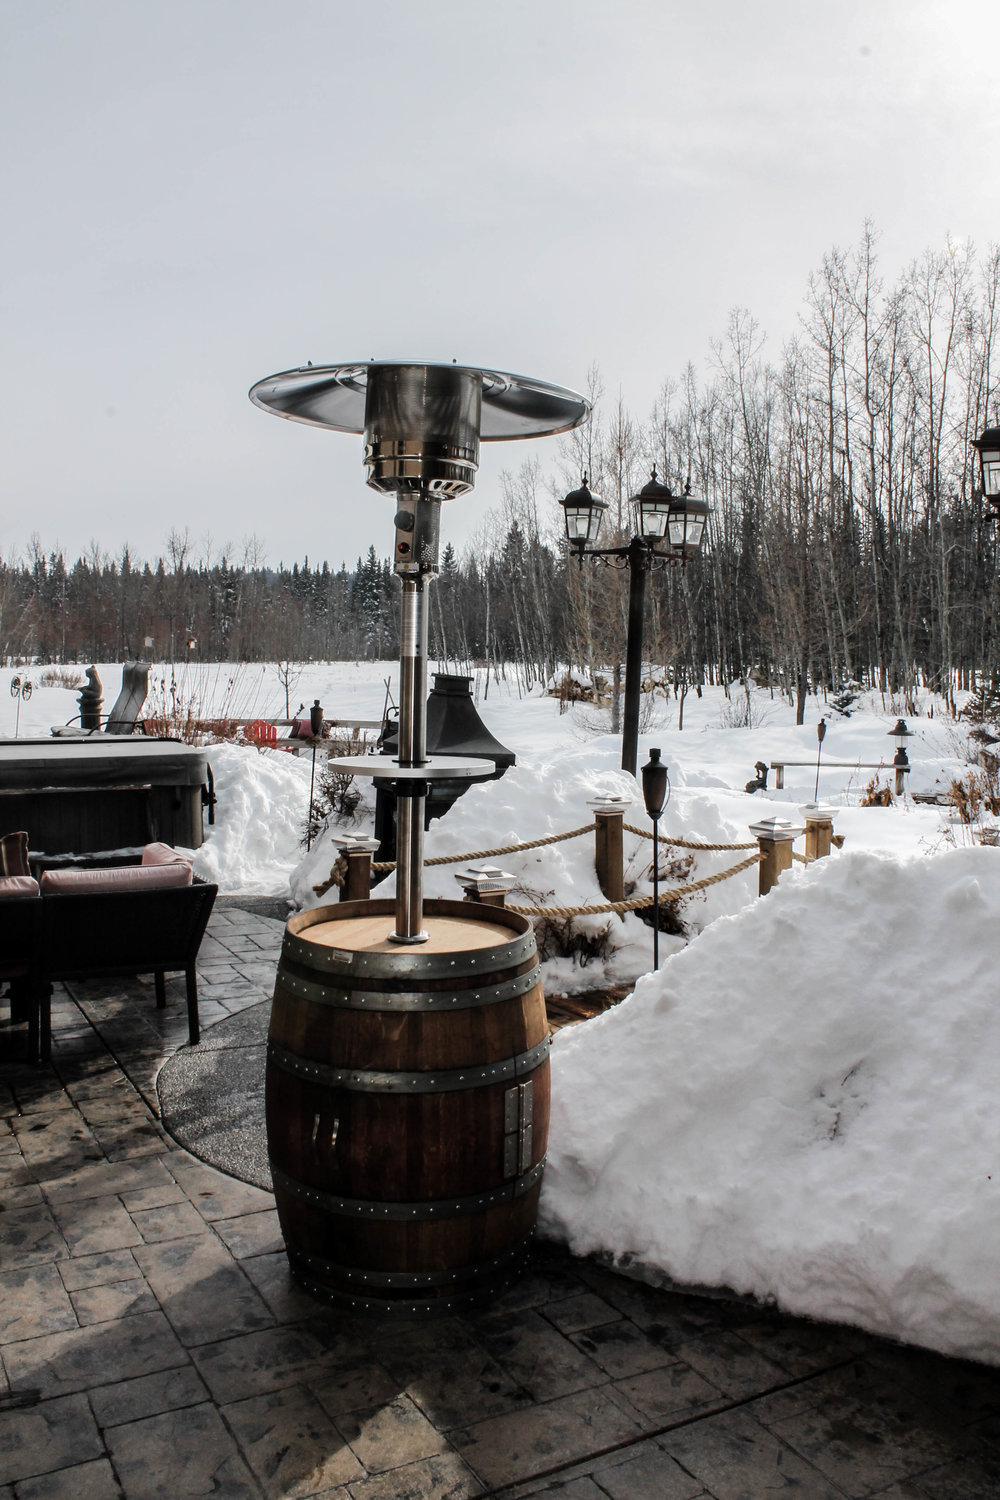 Barrel Patio Heater - Think ahead, forget the sweater at home – and stay warm when the sun goes down.